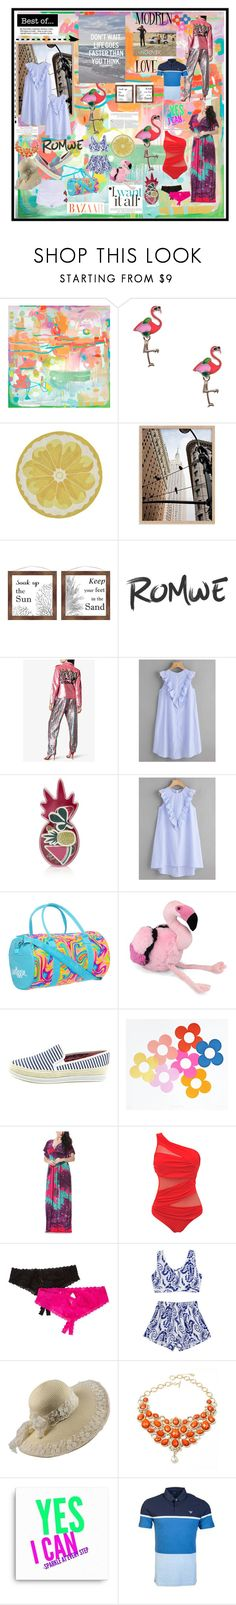 """""""WIN $ 30 COUPON - ROMWE"""" by carriearmstrong269 ❤ liked on Polyvore featuring PTM Images, Ashish, UNEARTHED, Chinese Laundry, Hanky Panky, Amrita Singh, Giorgio Armani and plus size clothing"""